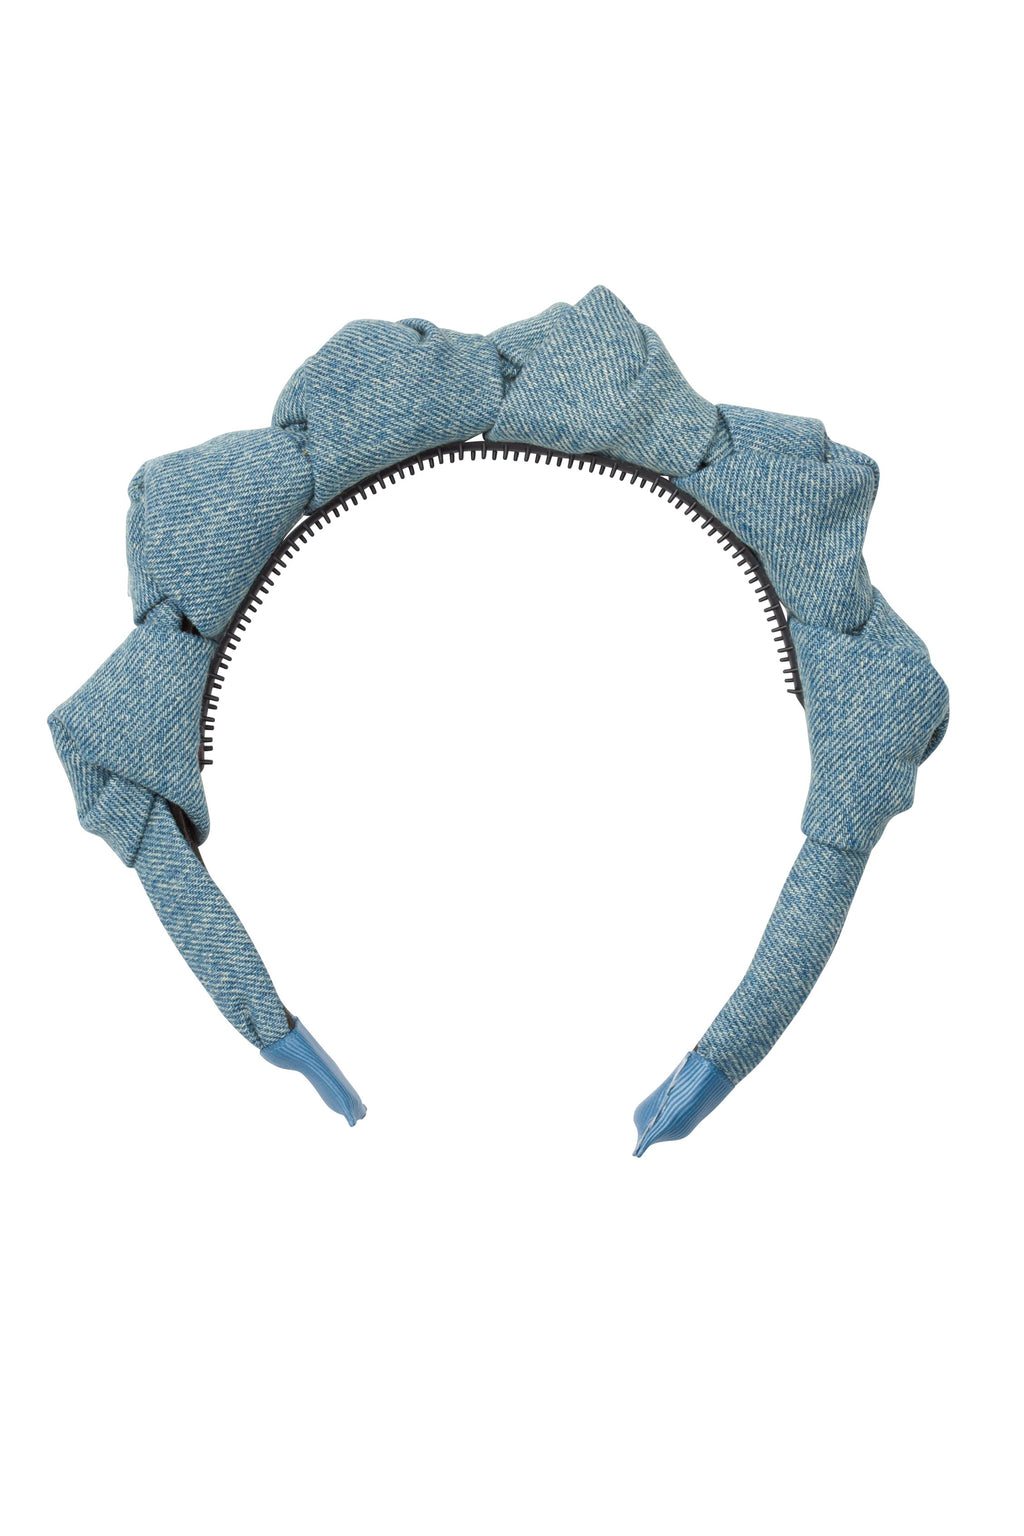 Monkey Bars Headband - Teal Denim - PROJECT 6, modest fashion